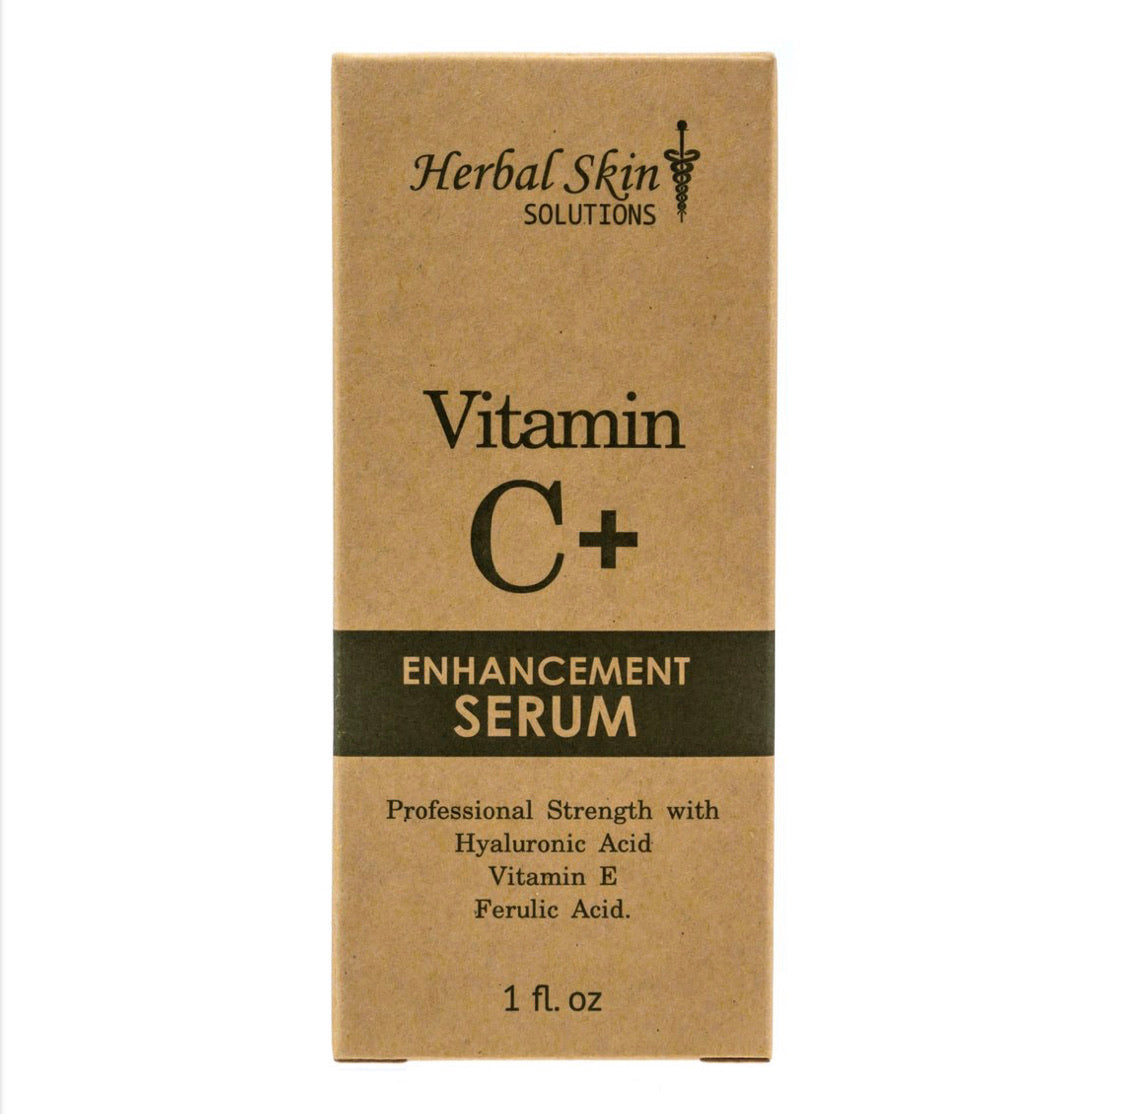 Vitamin C+ Enhancement Serum